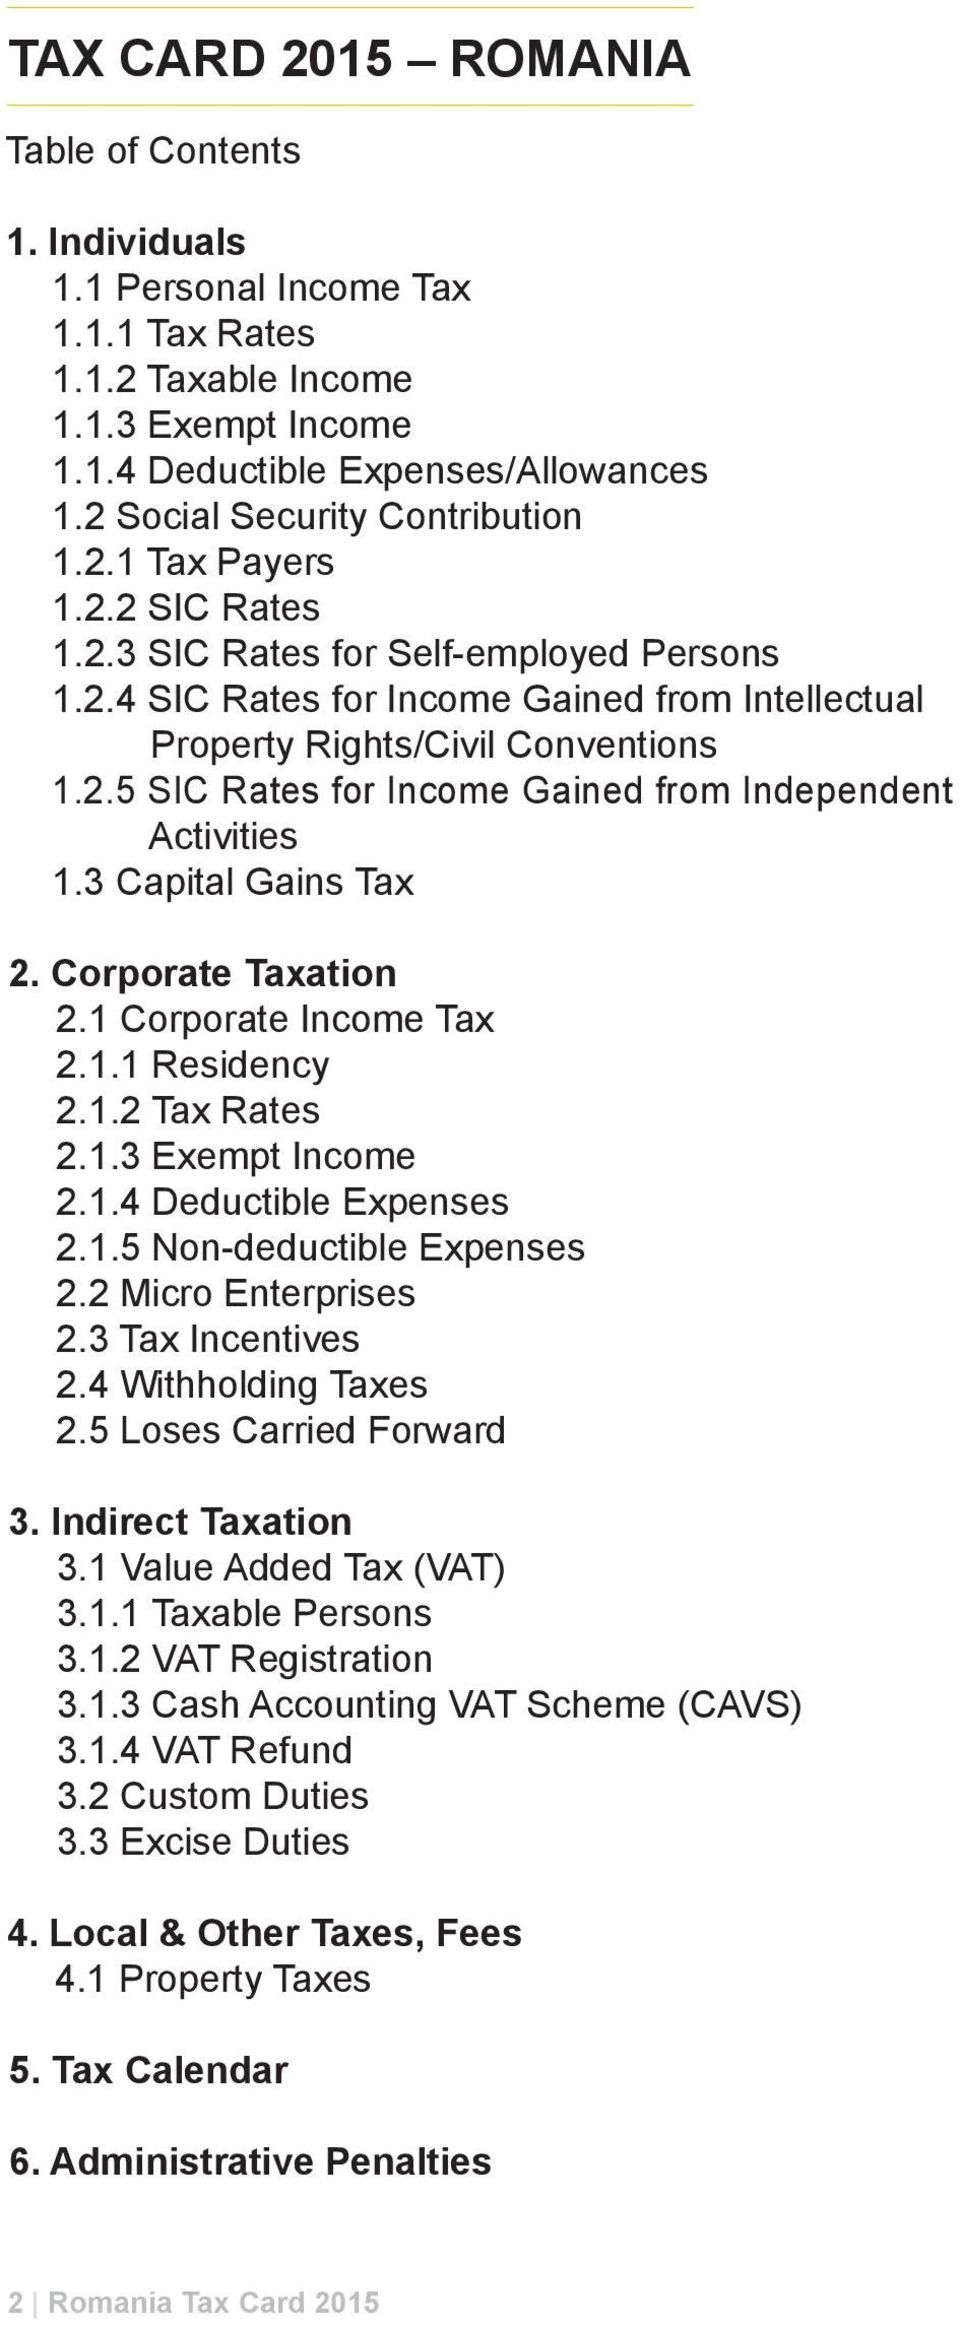 3 Capital Gains Tax 2. Corporate Taxation 2.1 Corporate Income Tax 2.1.1 Residency 2.1.2 Tax Rates 2.1.3 Exempt Income 2.1.4 Deductible Expenses 2.1.5 Non-deductible Expenses 2.2 Micro Enterprises 2.